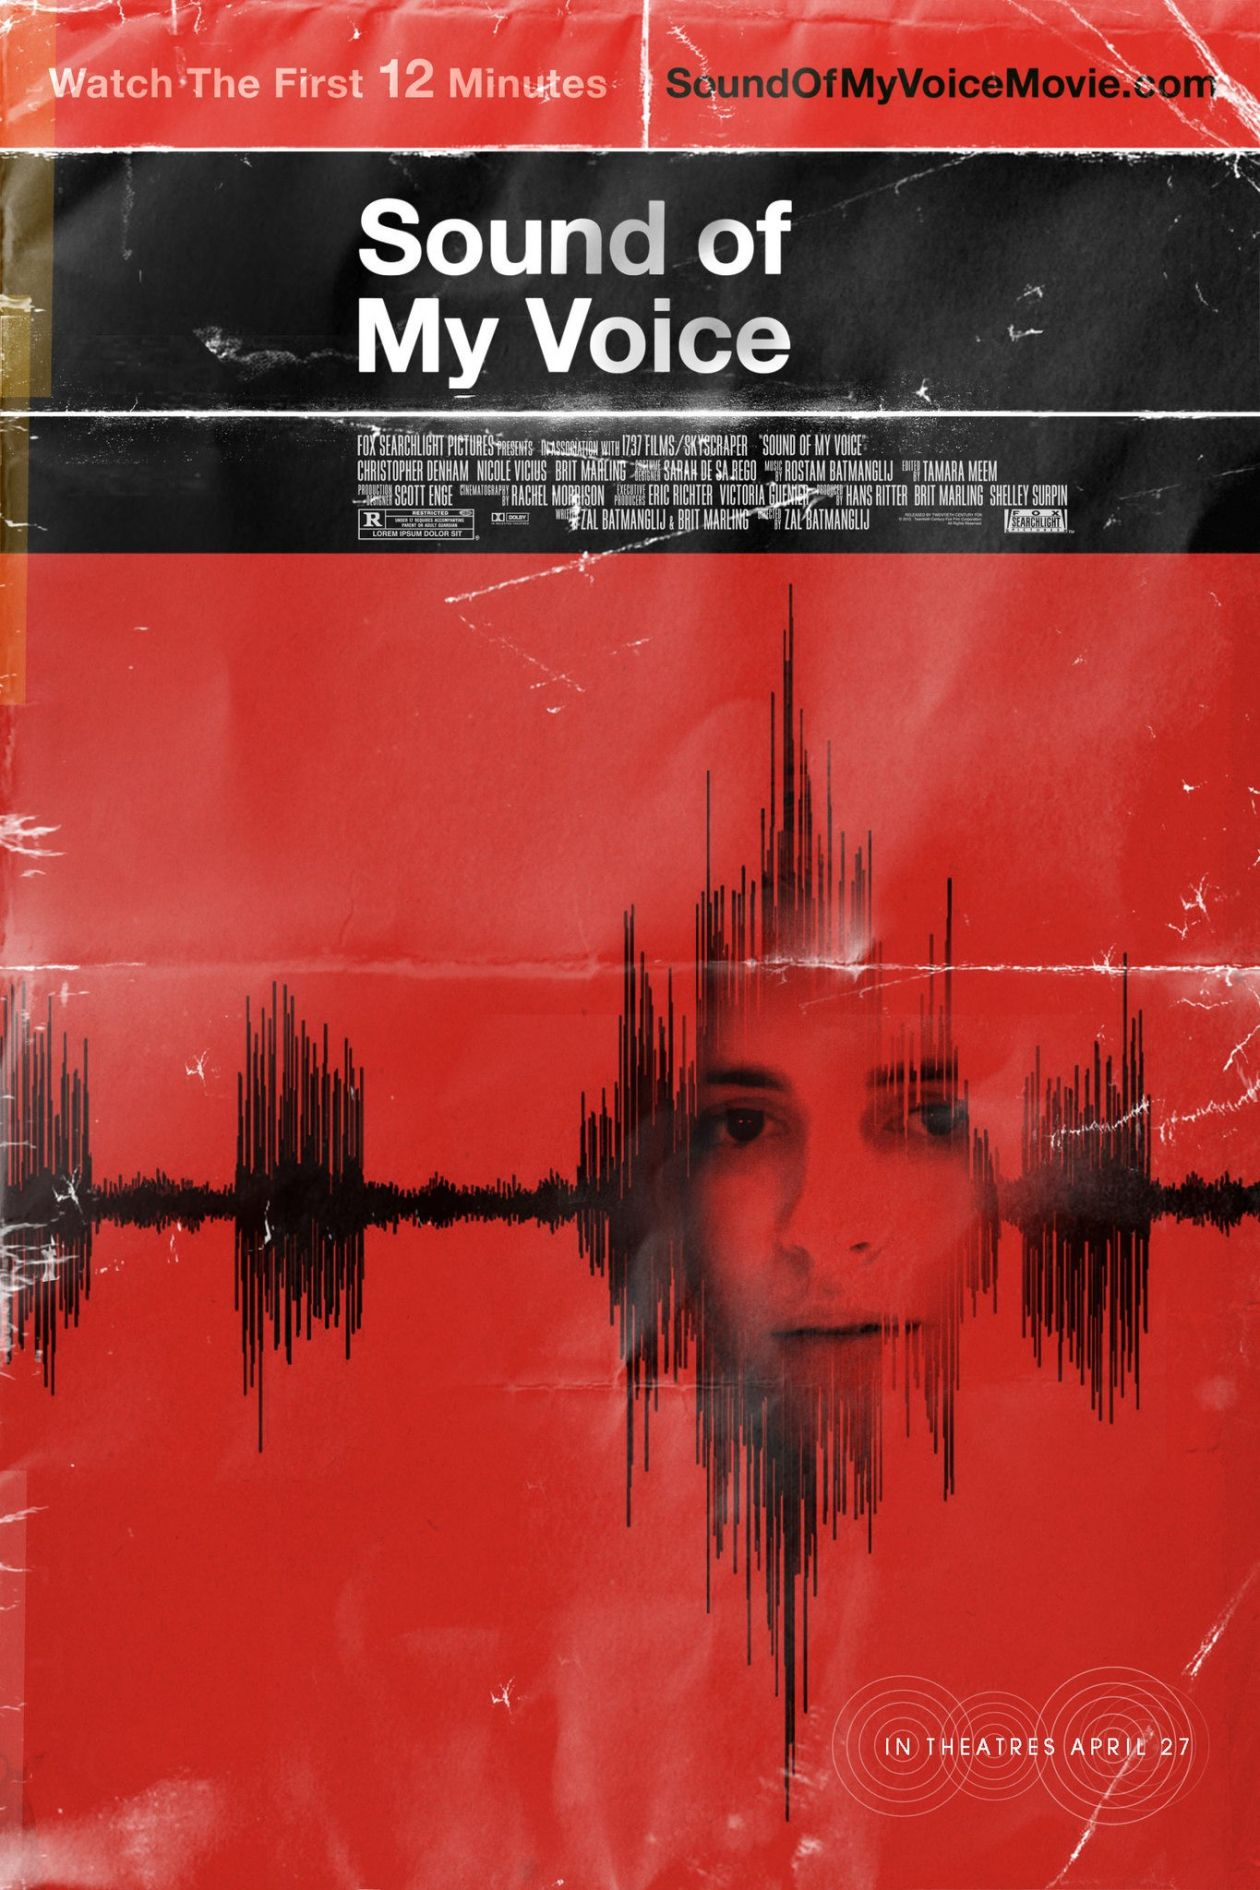 Brit Marling actress | Sound of my voice / Zal Batmanglij 2012 Movie Poster / Affiche film